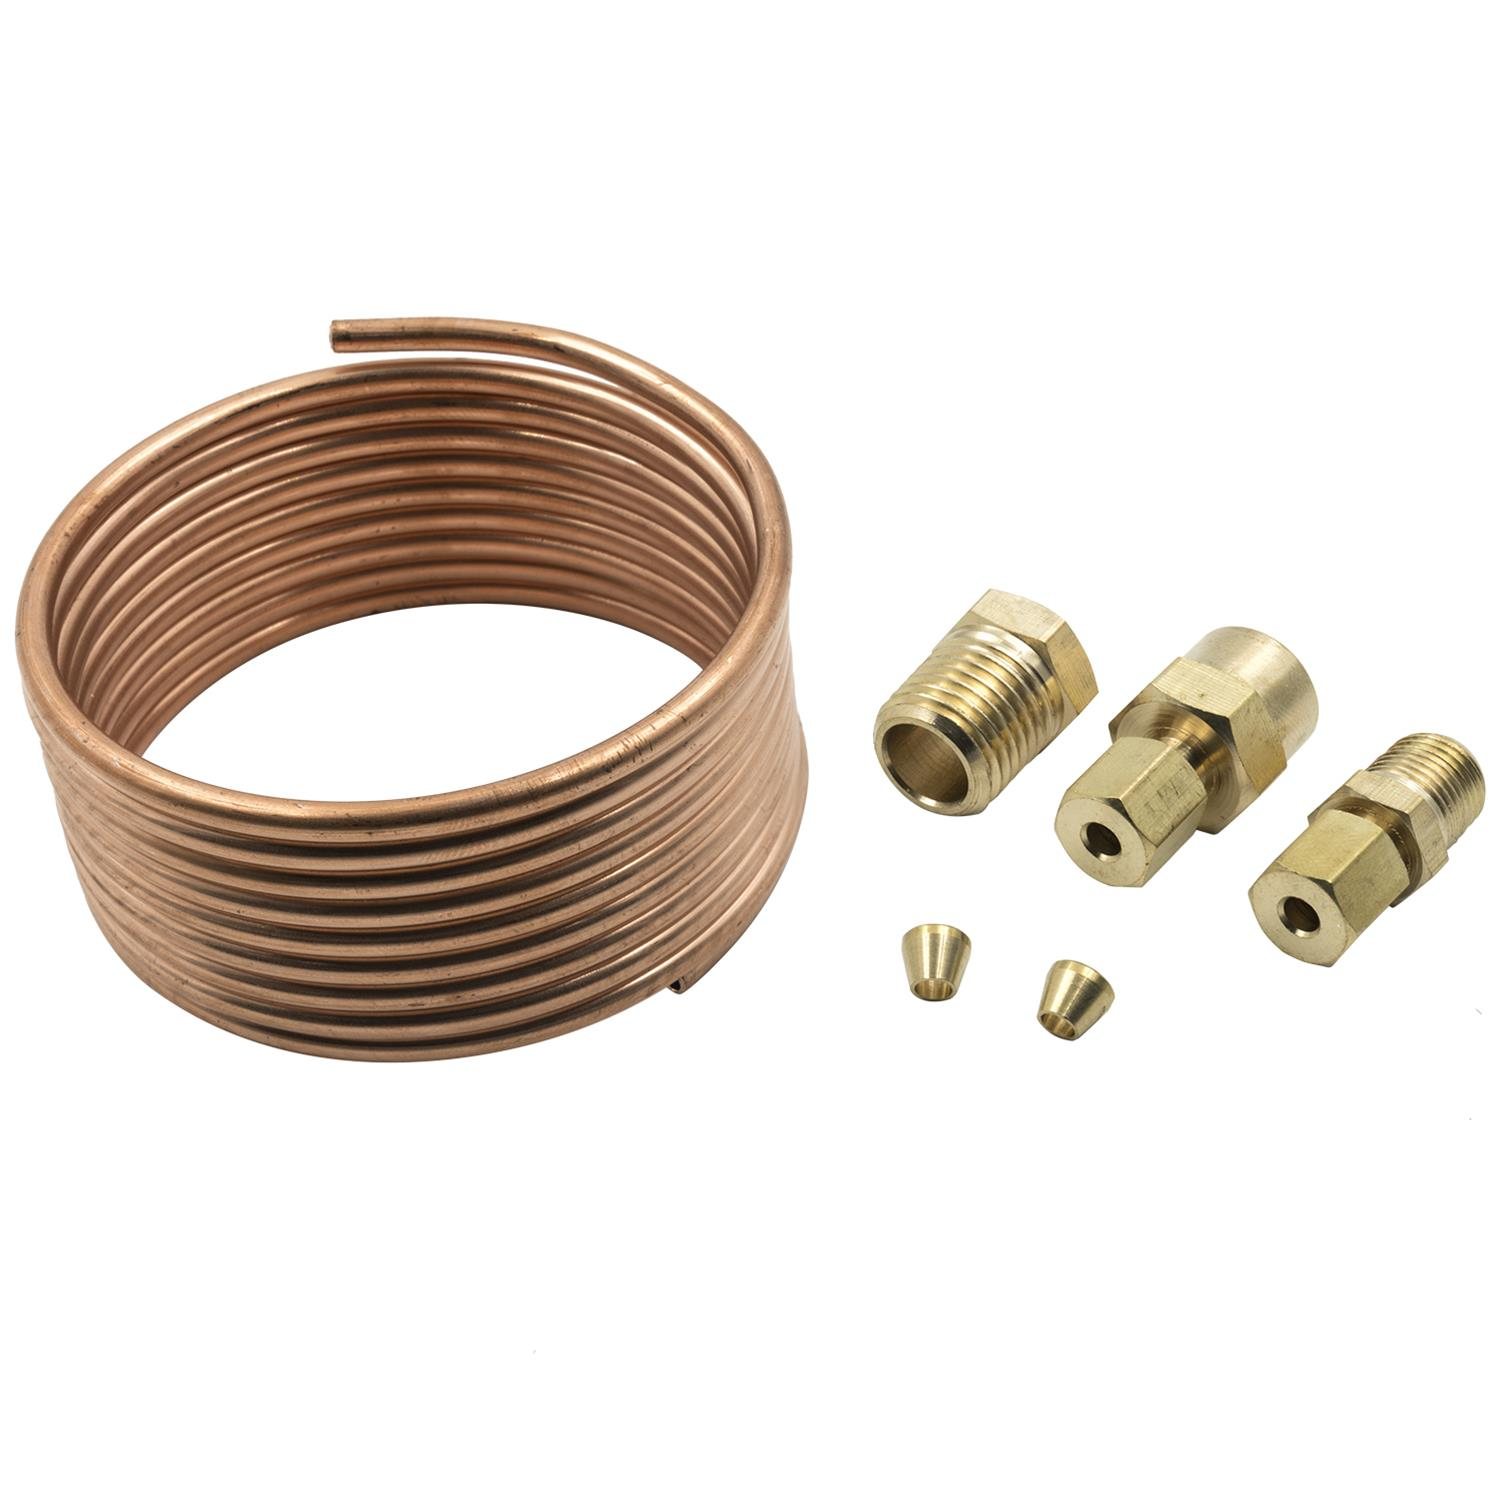 "Auto Meter 3224 Tubing Copper 1//8/"" 6ft Length 1//8/"" Brass Compression Fittings"